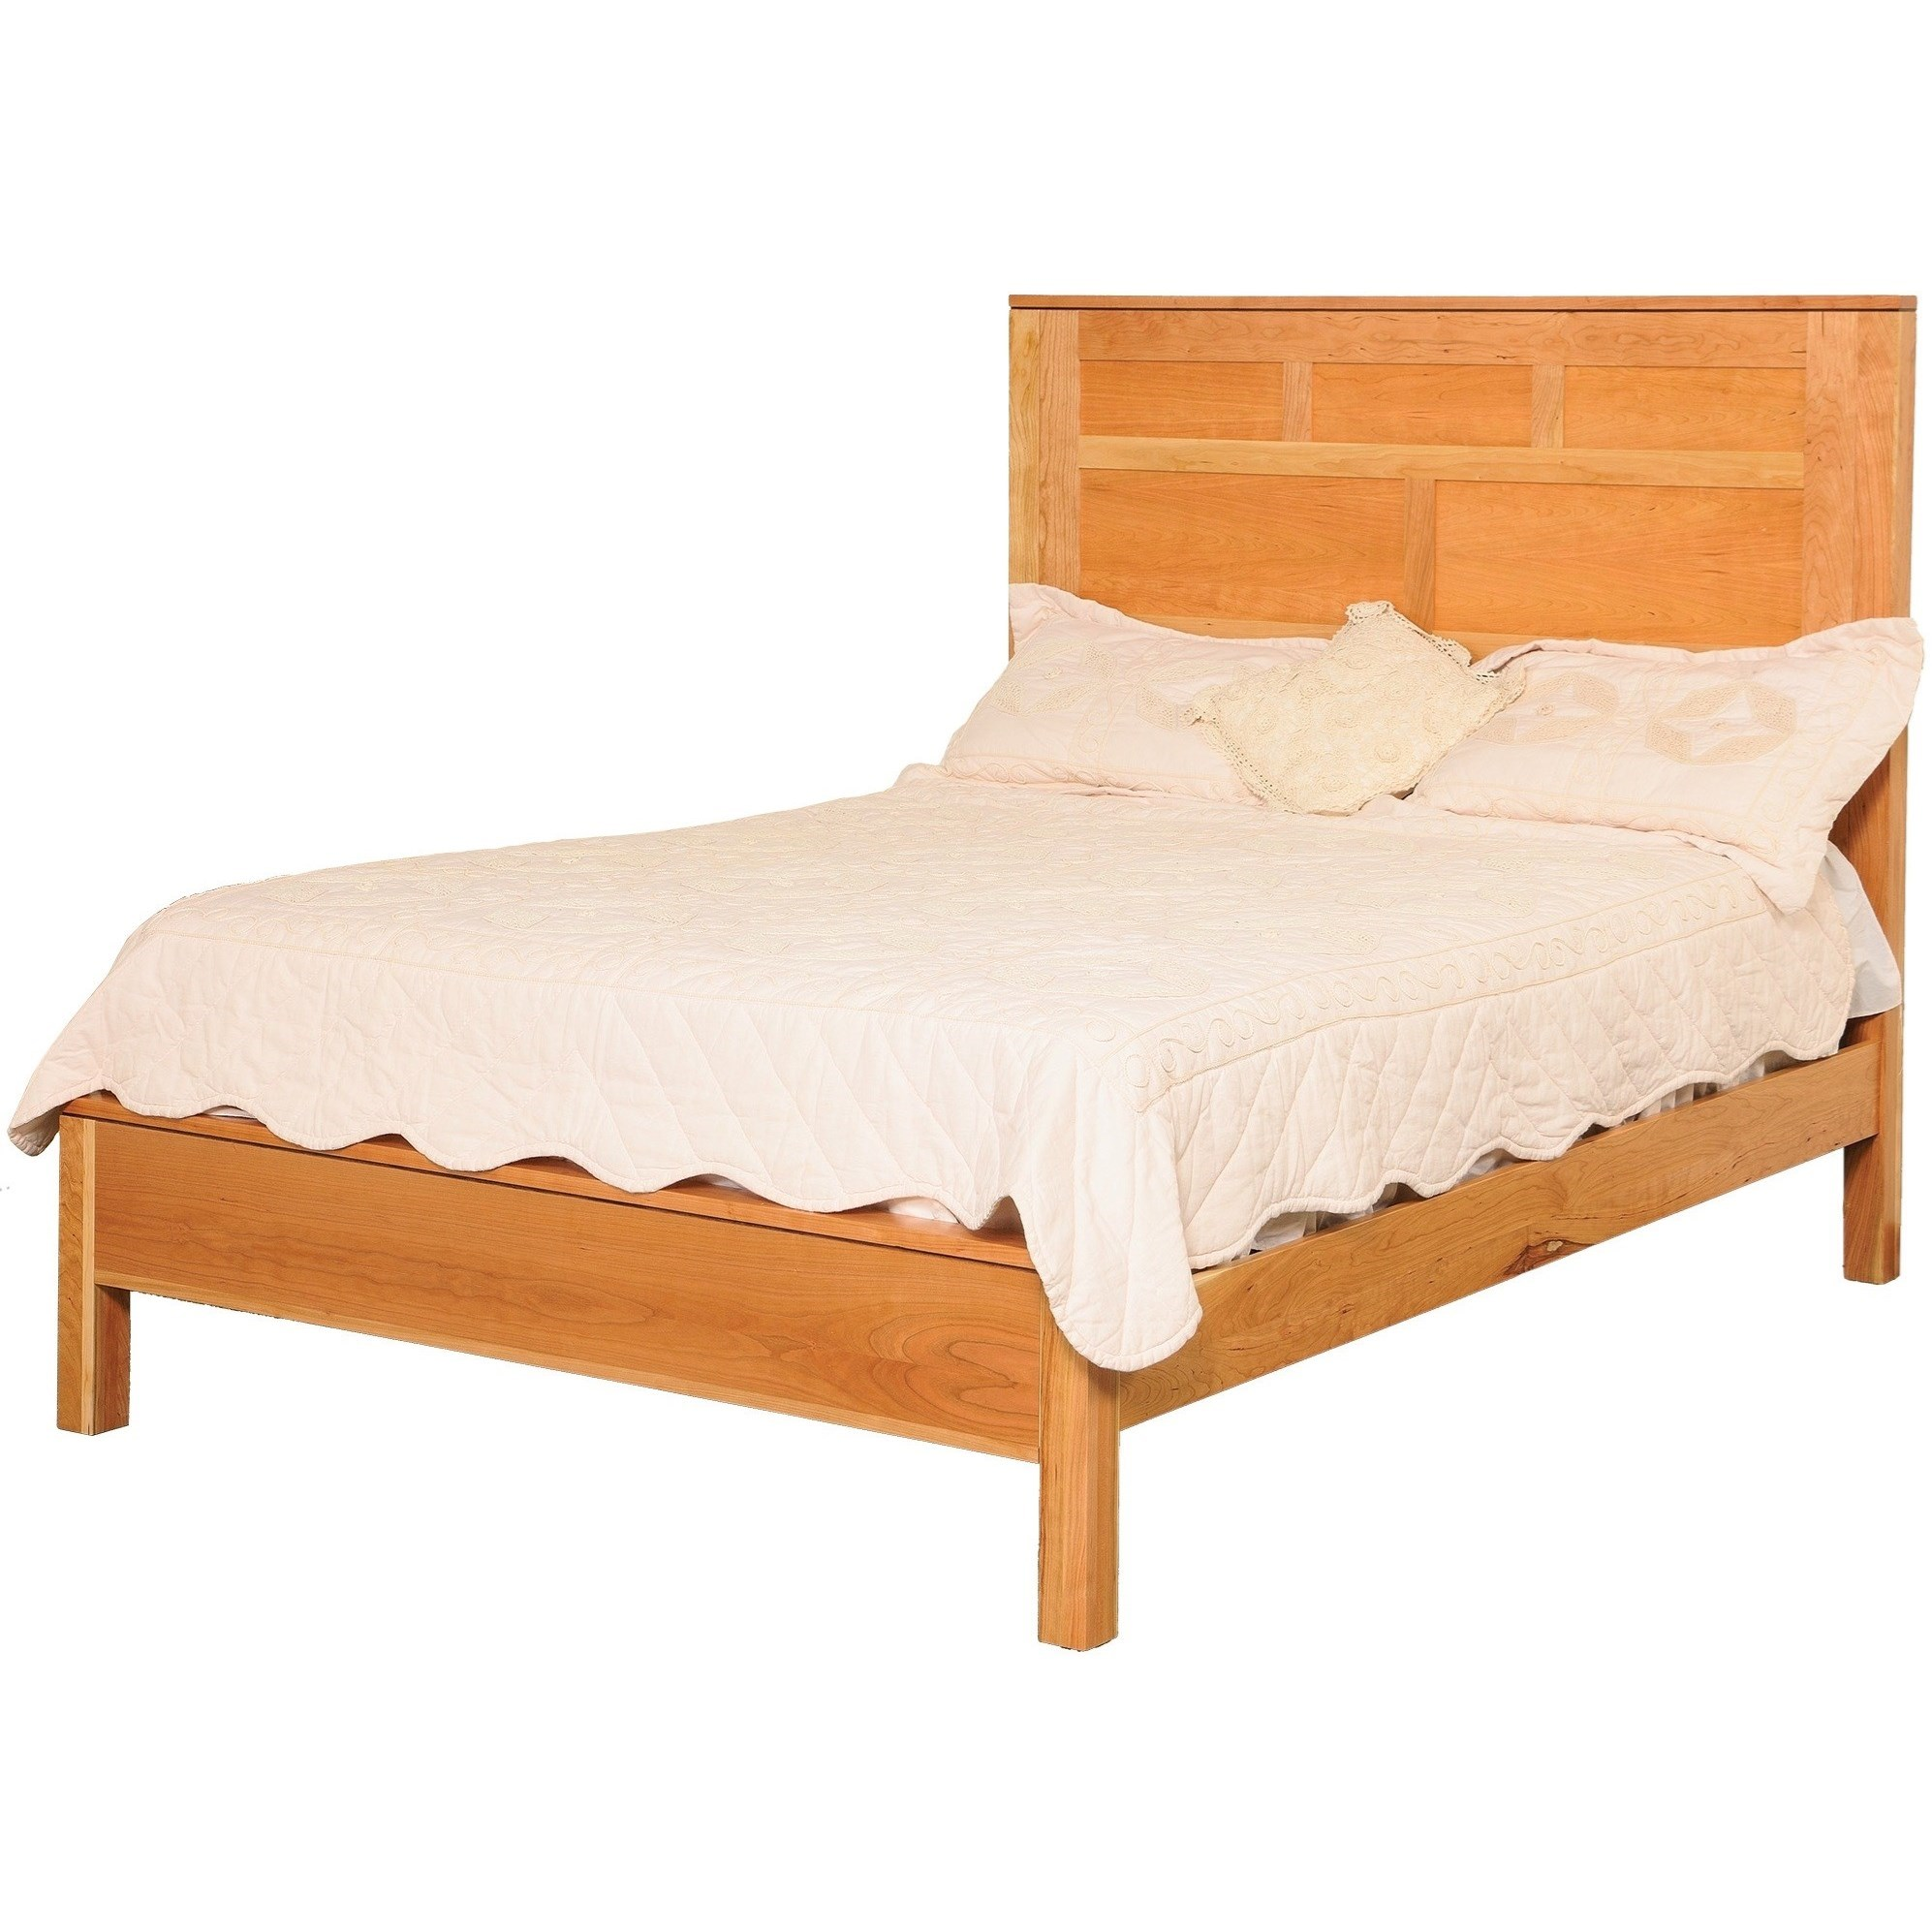 Modern Queen Panel Bed by Daniel's Amish at Lapeer Furniture & Mattress Center